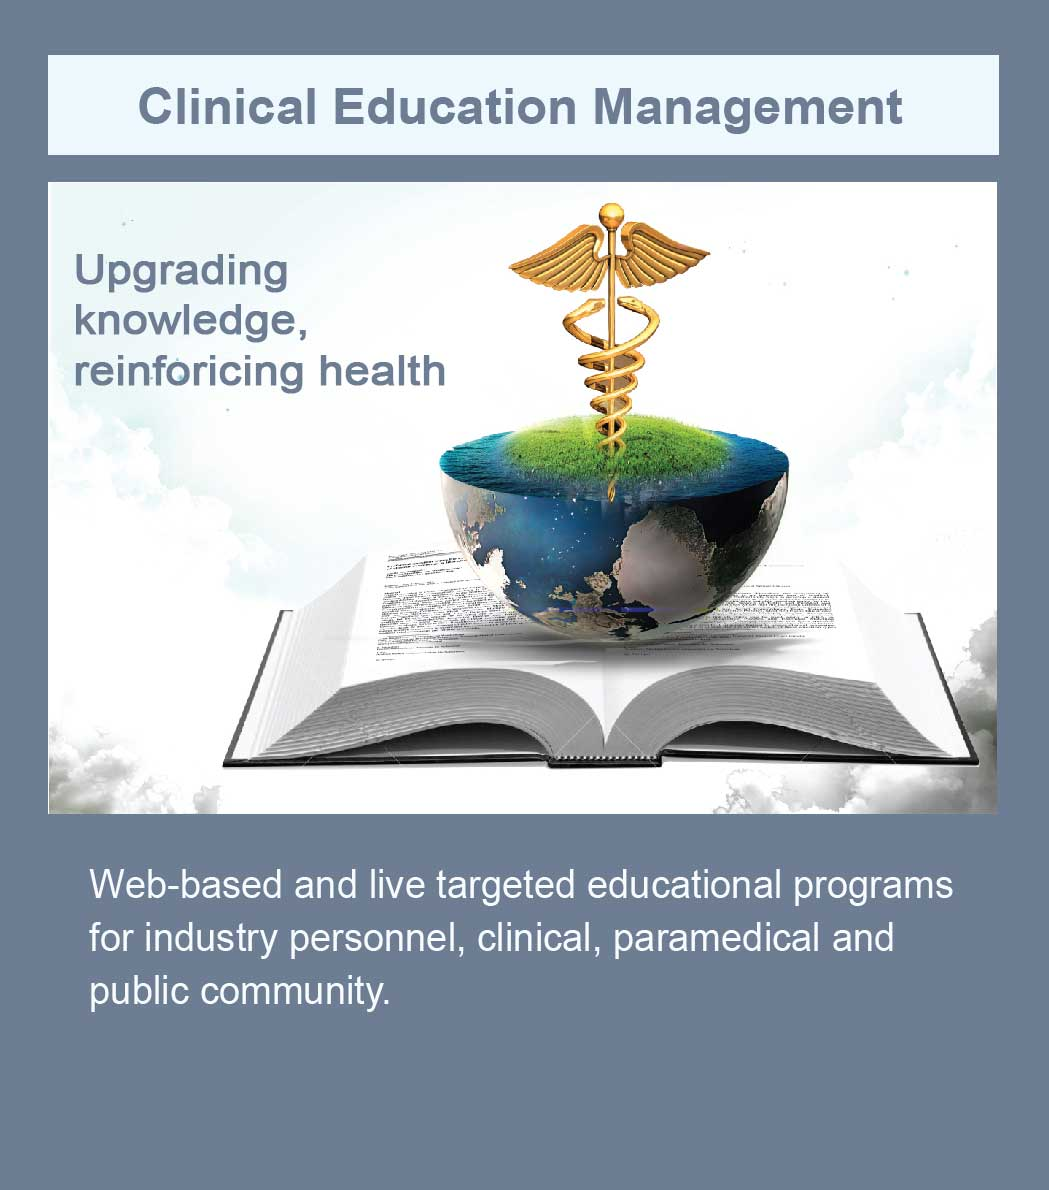 Clinical Education Management